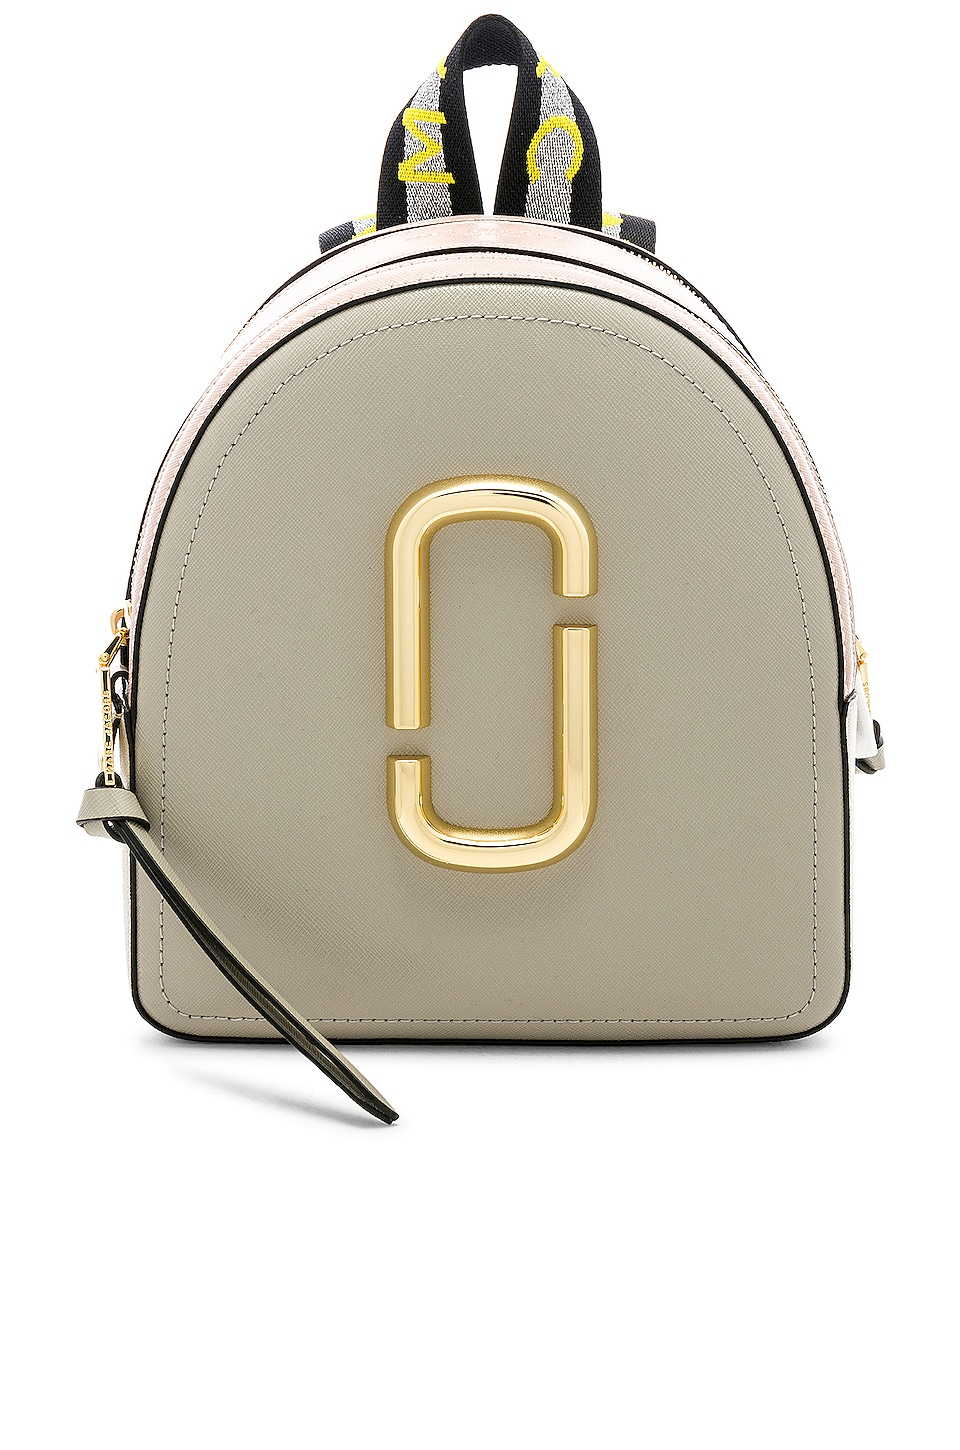 Marc Jacobs Pack Shot Marc Jacobs Backpack in Dust Multi | REVOLVE